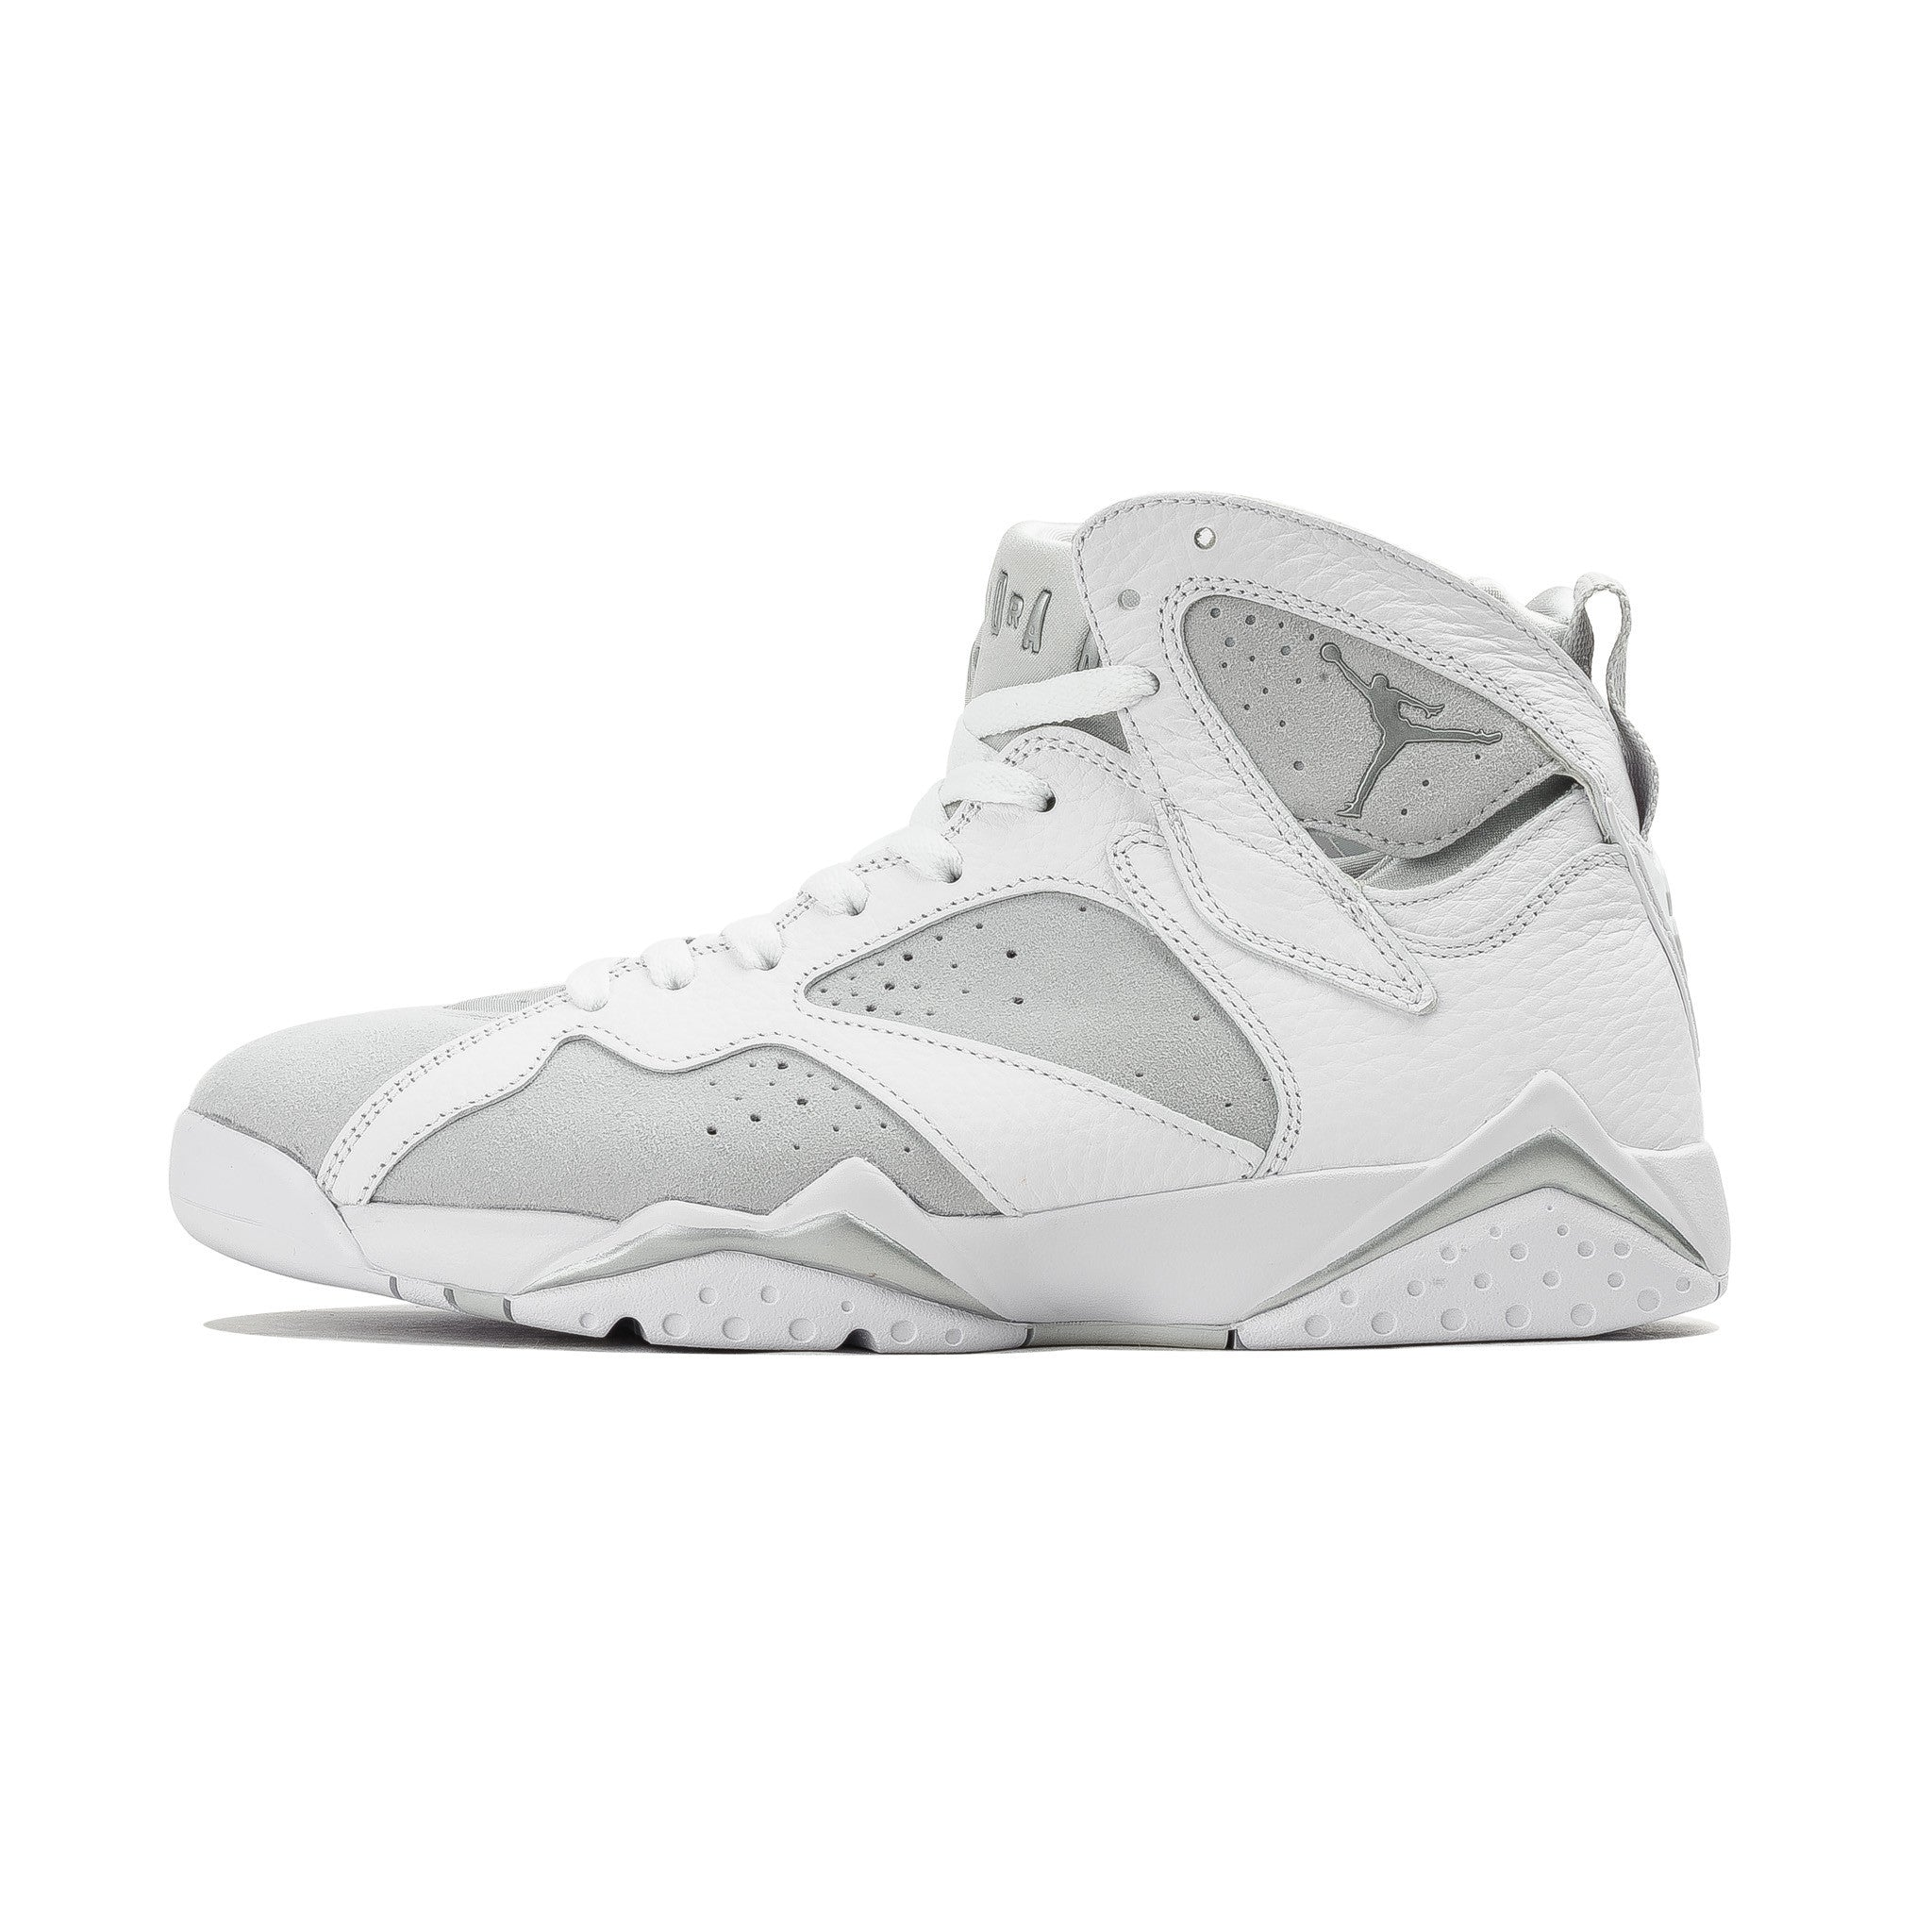 Air Jordan 7 Retro 304775-120 White